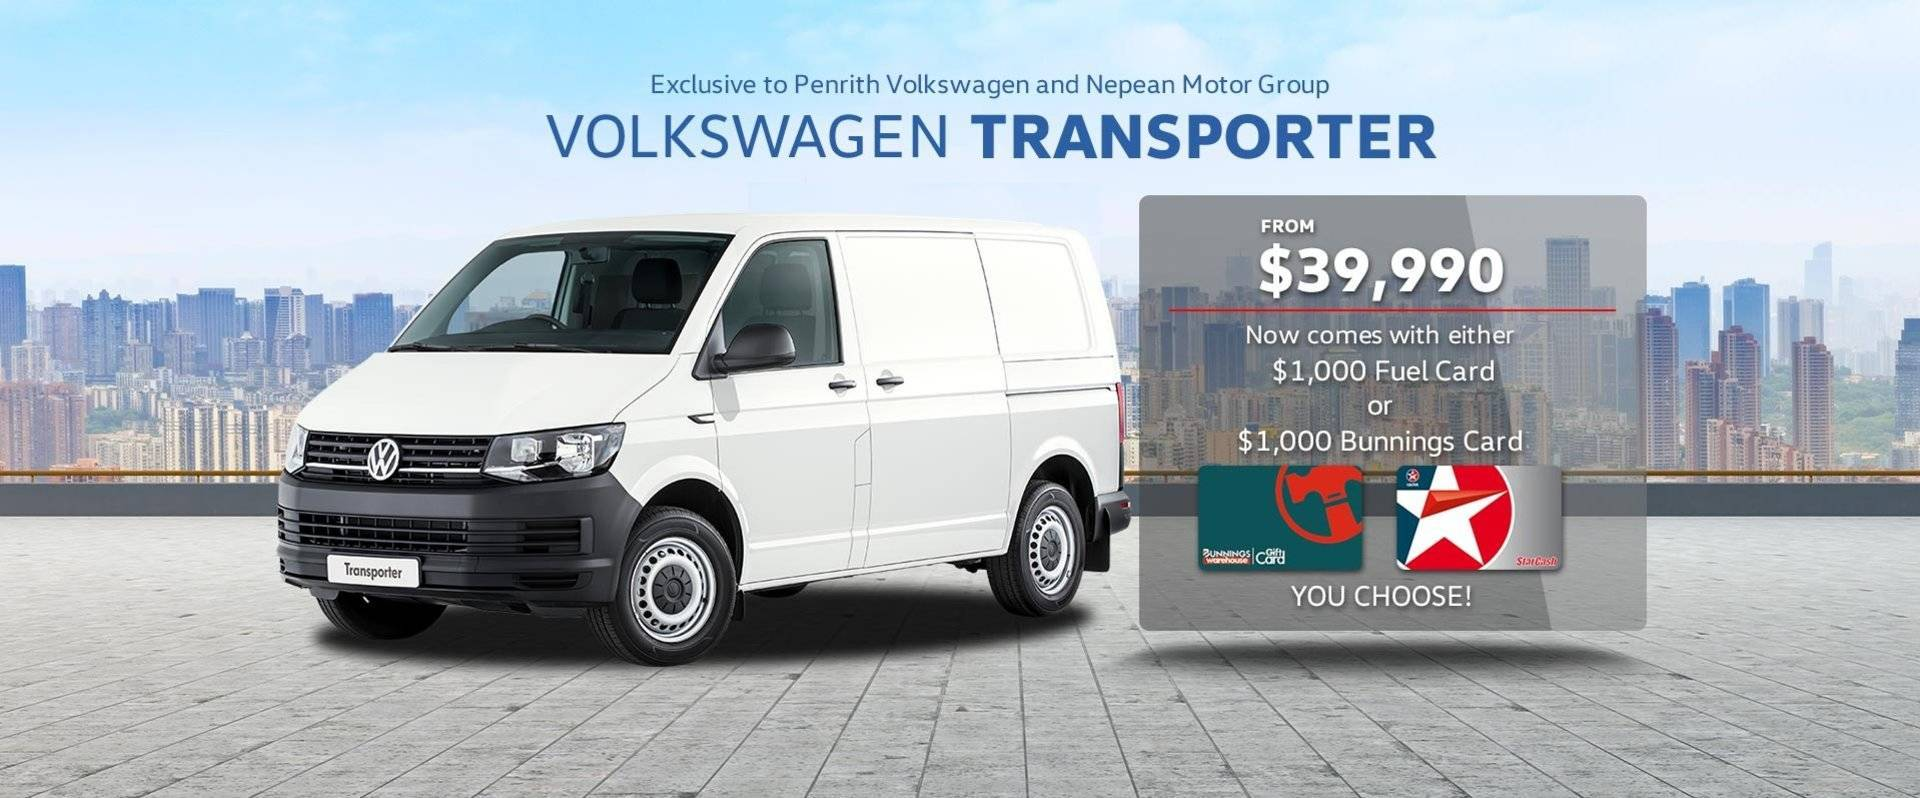 Transporter - $1,000 Gift Card Included